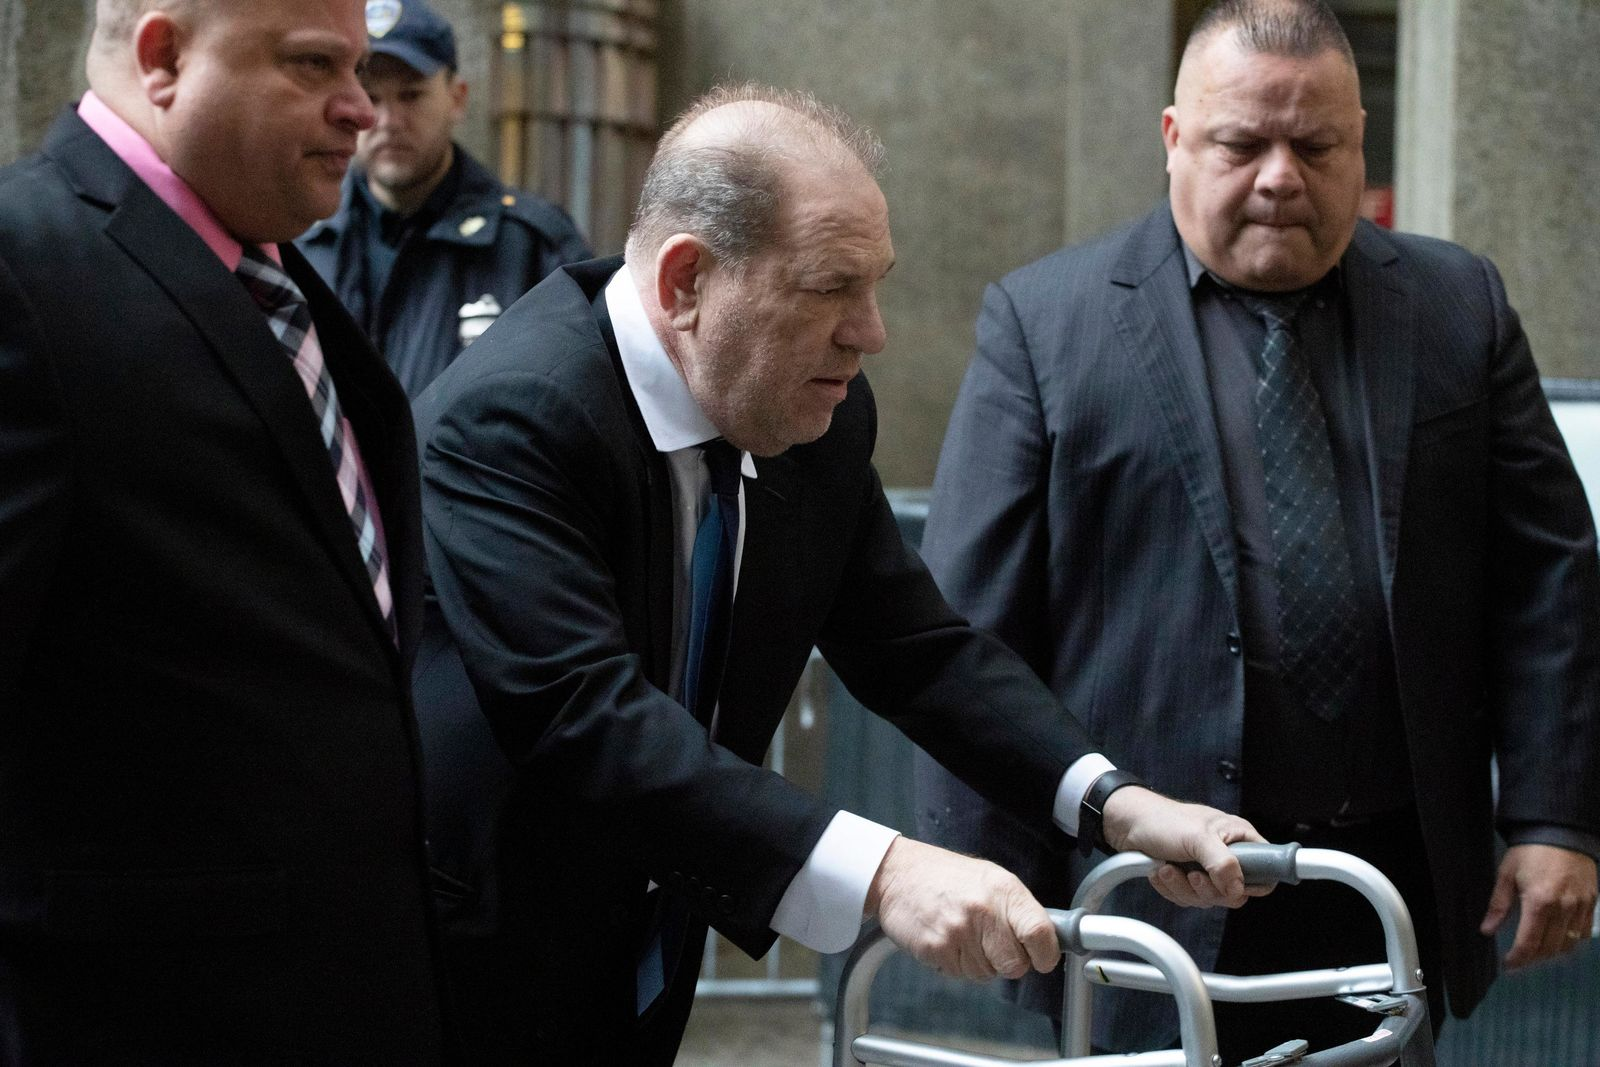 Harvey Weinstein, center, arrives for a court hearing, Wednesday, Dec. 11, 2019 in New York. (AP Photo/Mark Lennihan)